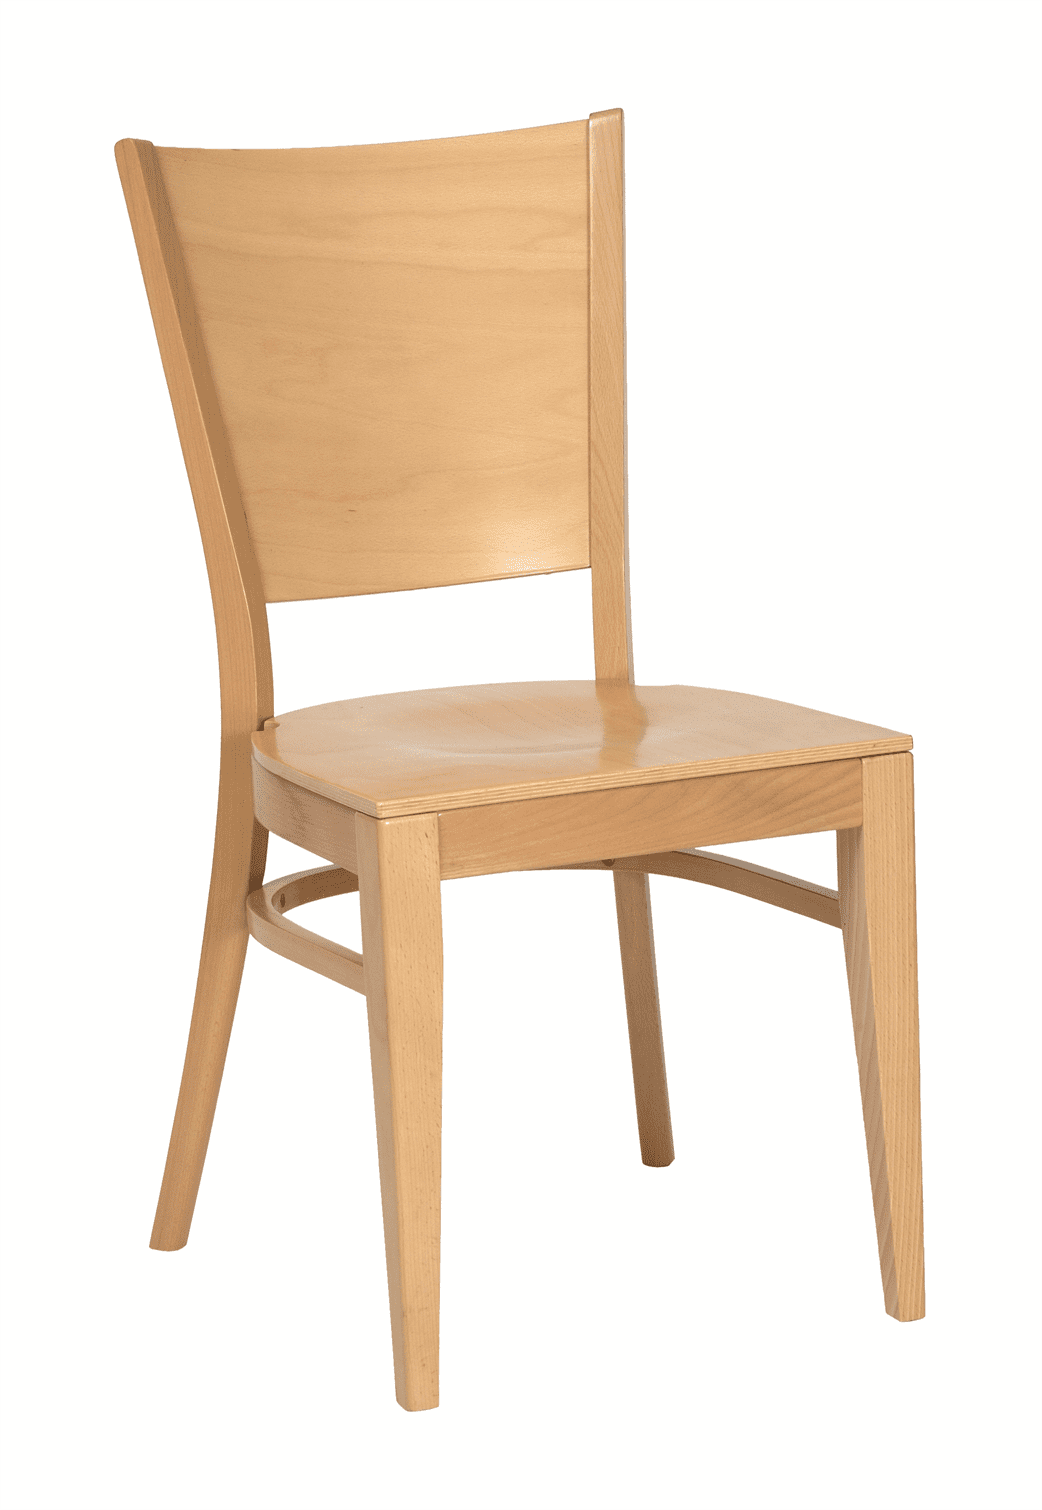 Richmond stacking side chair veneer seat & back raw